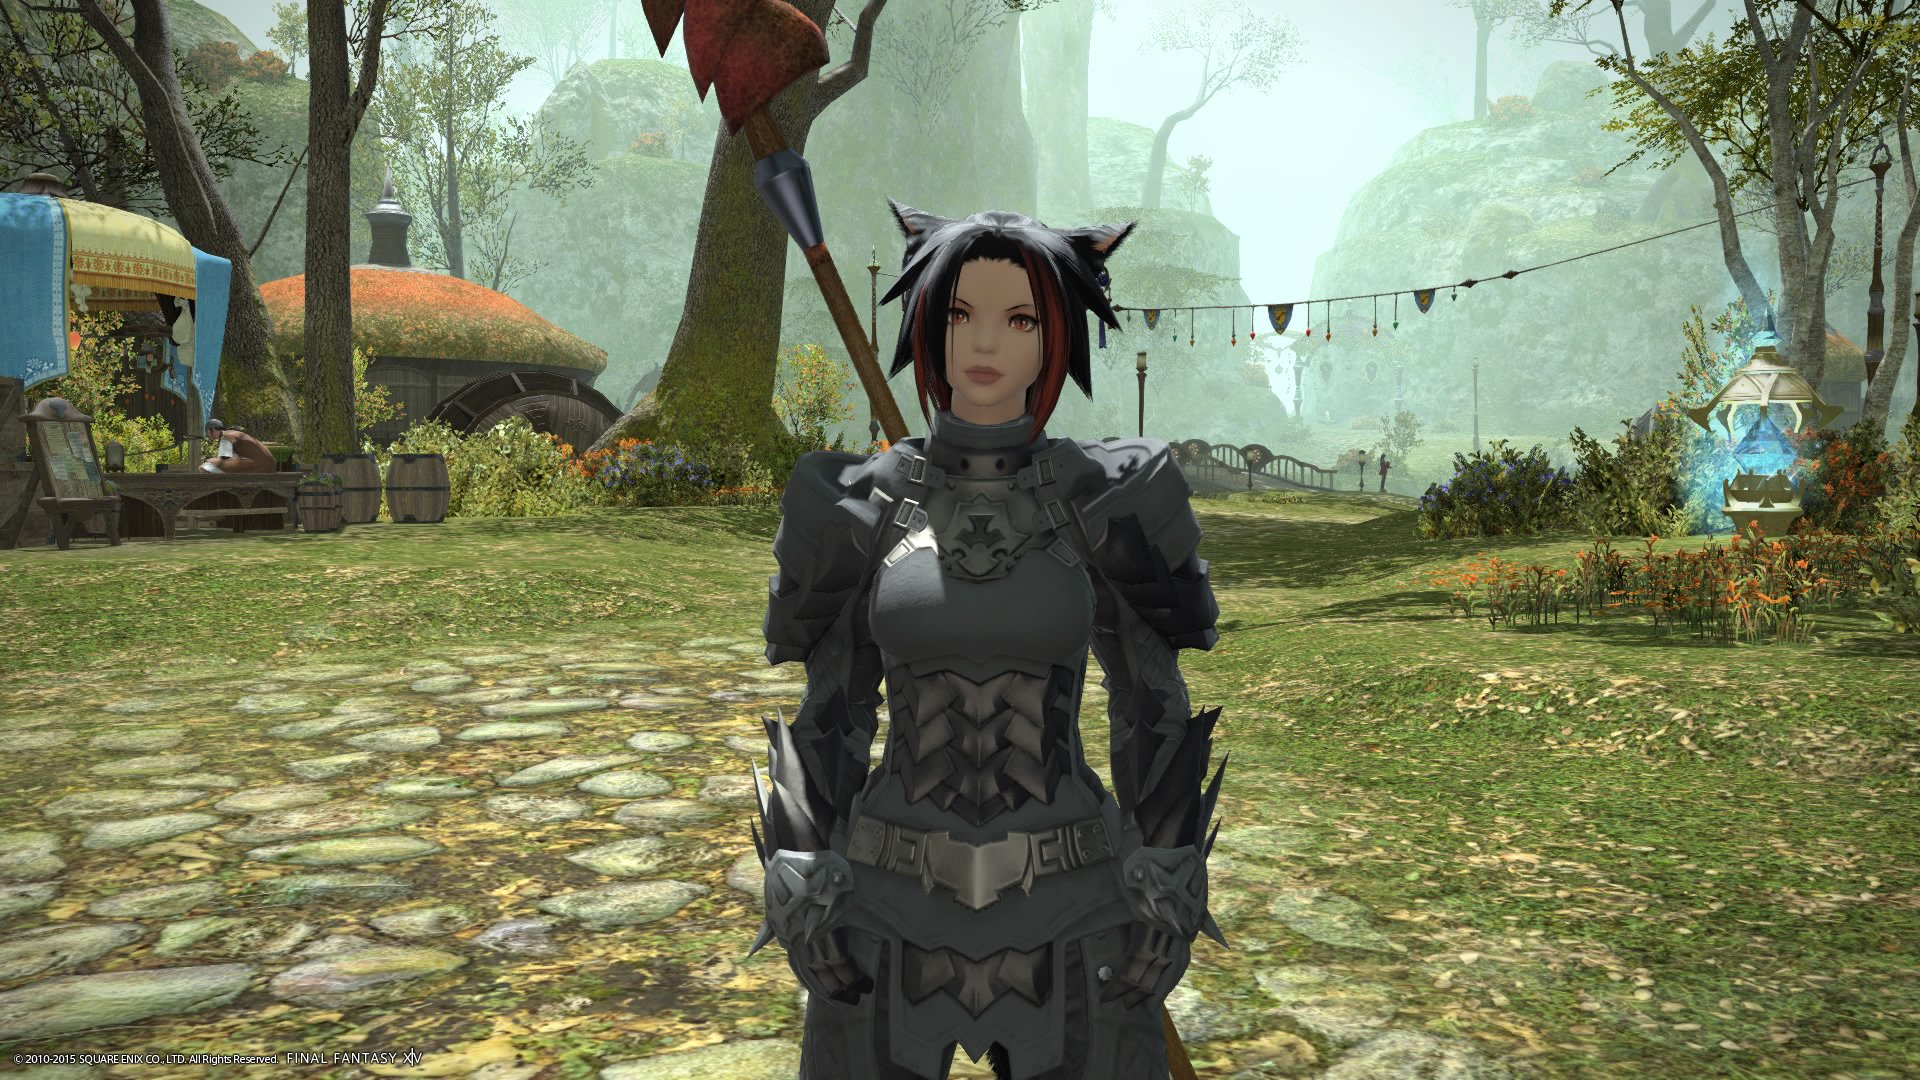 Changed my character in FFXIV from a Dragon Lady to a Cat